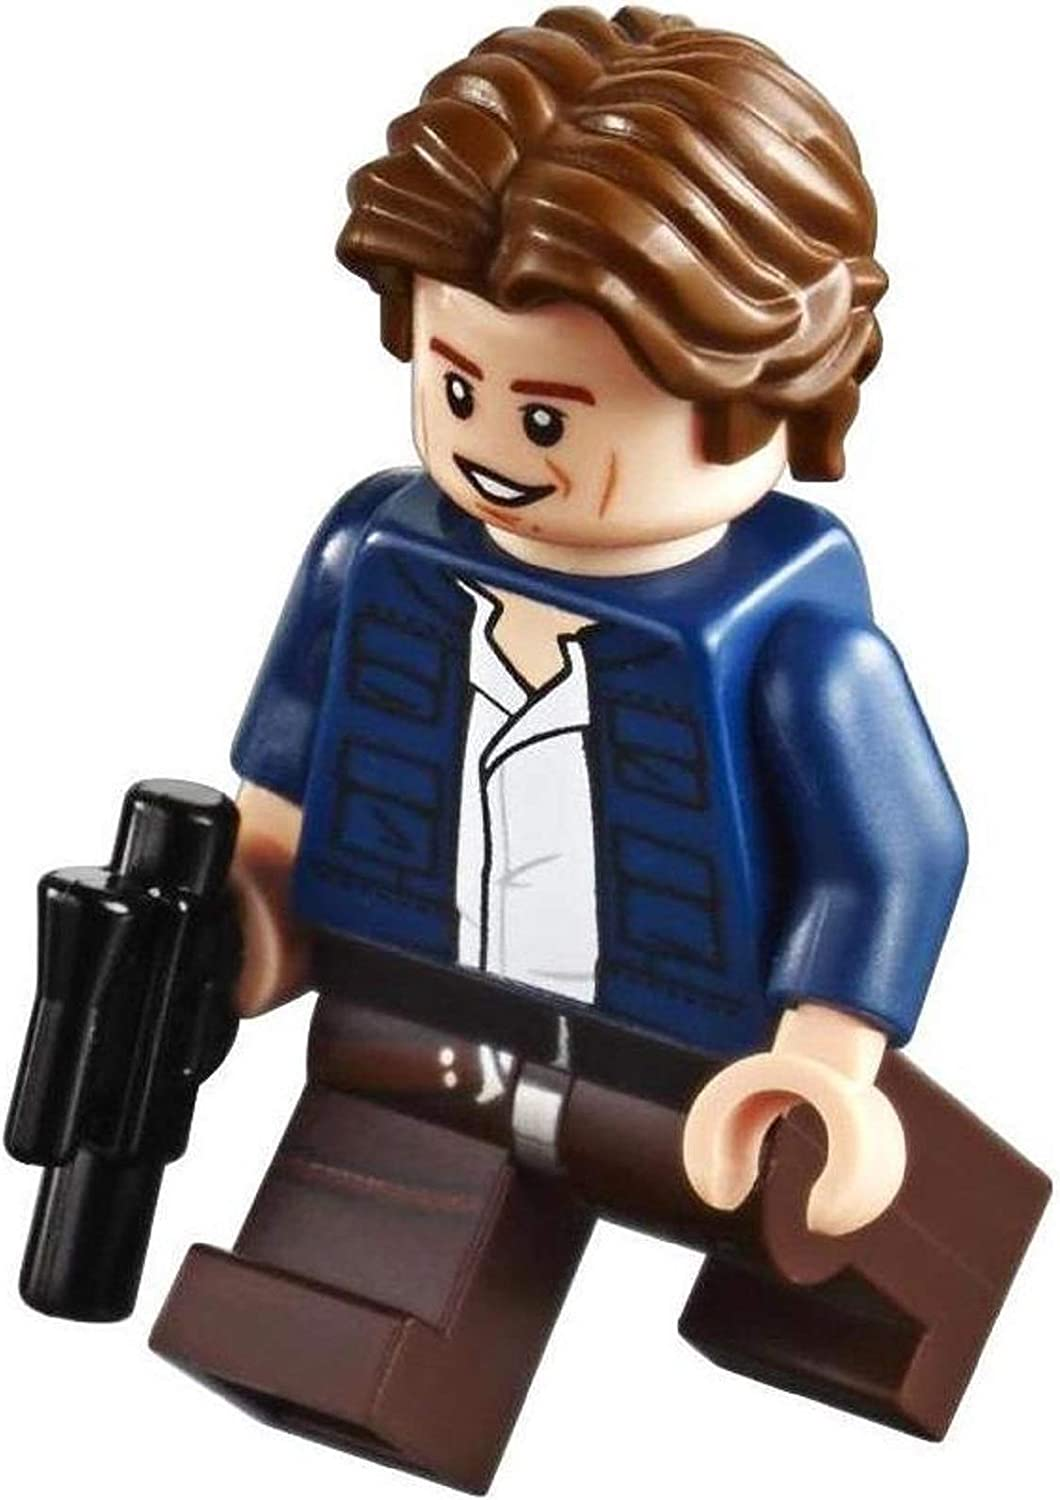 LEGO Parts: Star Wars Han Solo Minifig with Blaster - from UCS Slave 1